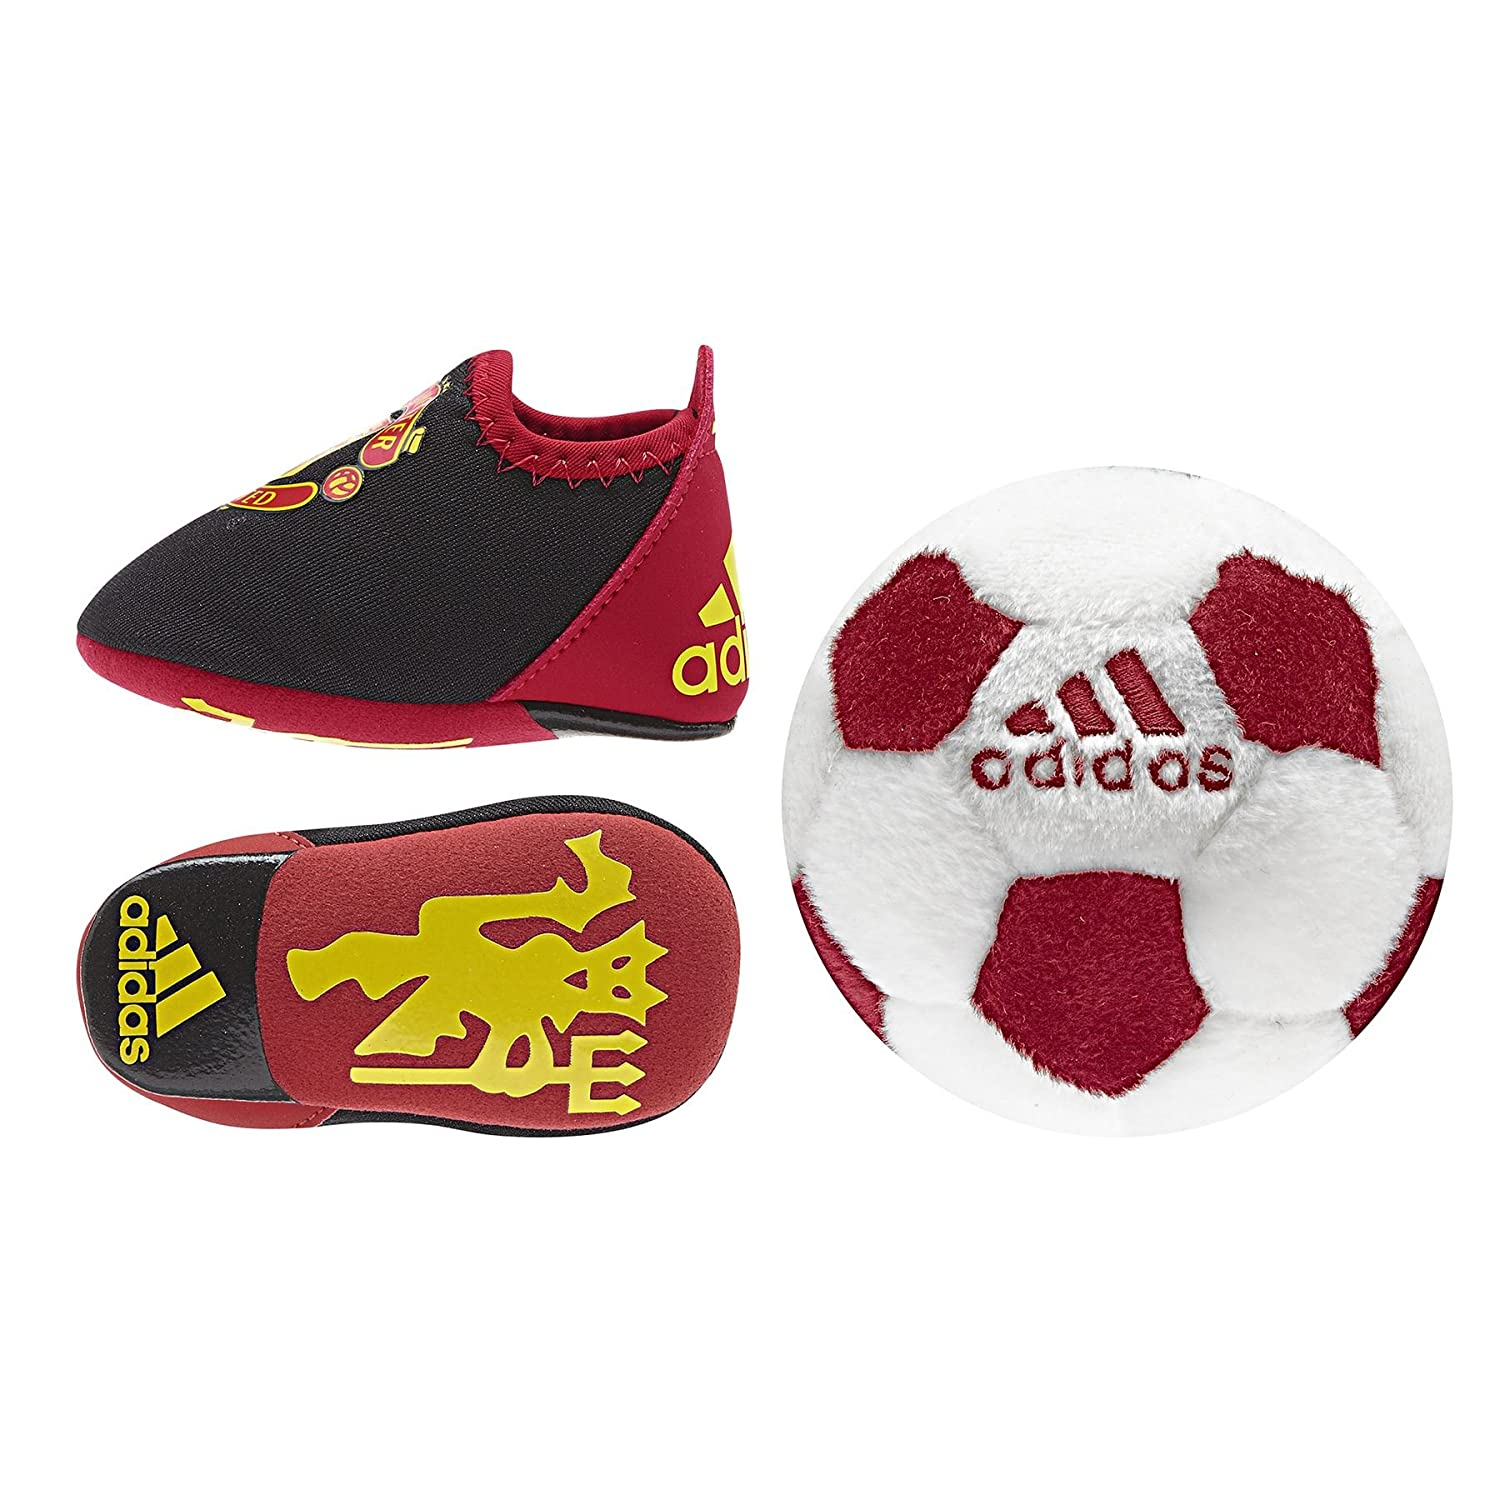 adidas Baby Manchester United Crib Pack Shoes Infants Club Crest